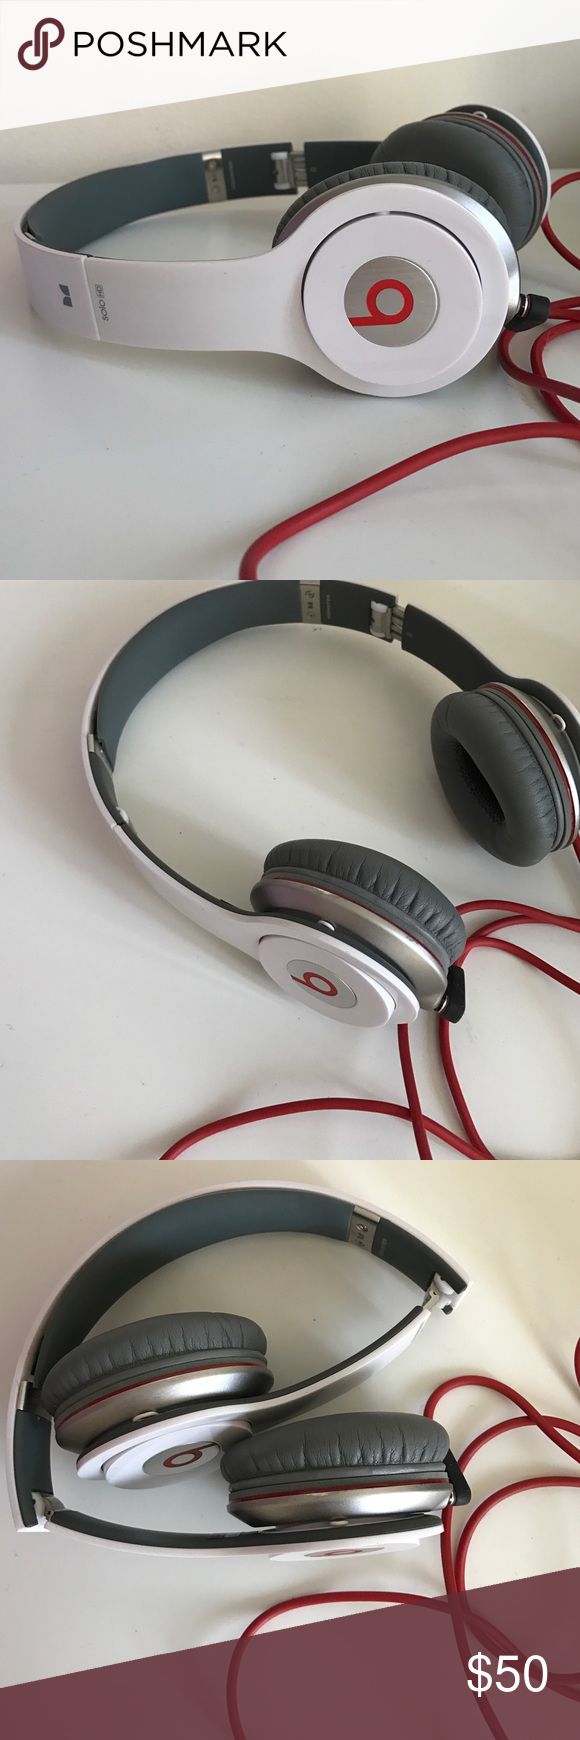 Beats by Dre Solo Wired Headphones These work great, I just received ...